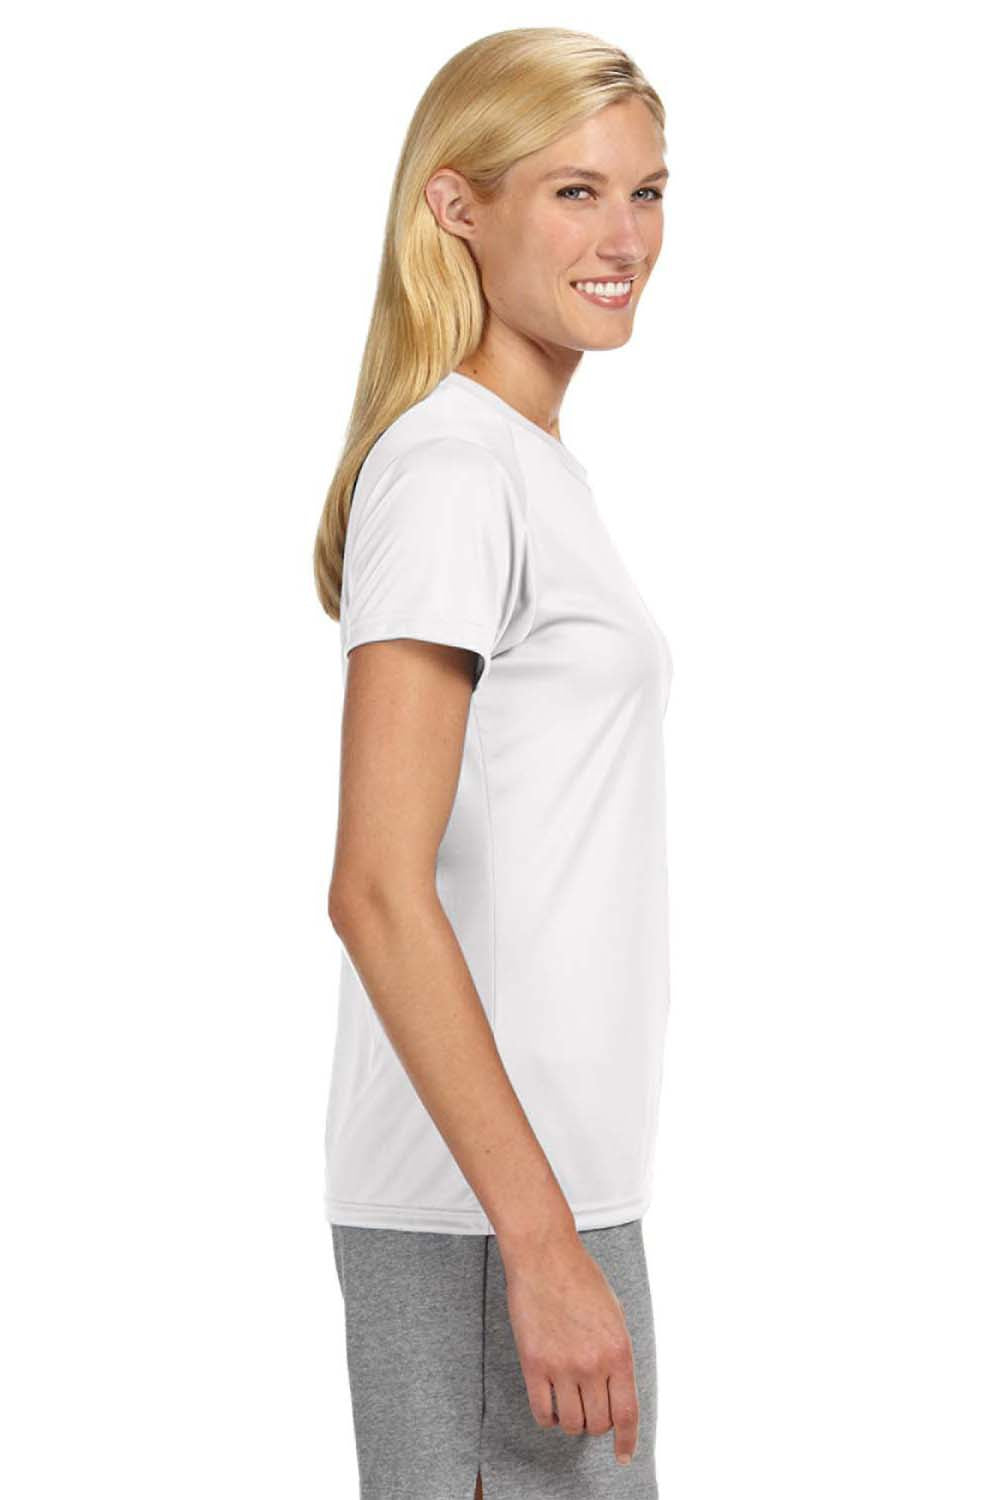 A4 NW3201 Womens Cooling Performance Moisture Wicking Short Sleeve Crewneck T-Shirt White Side